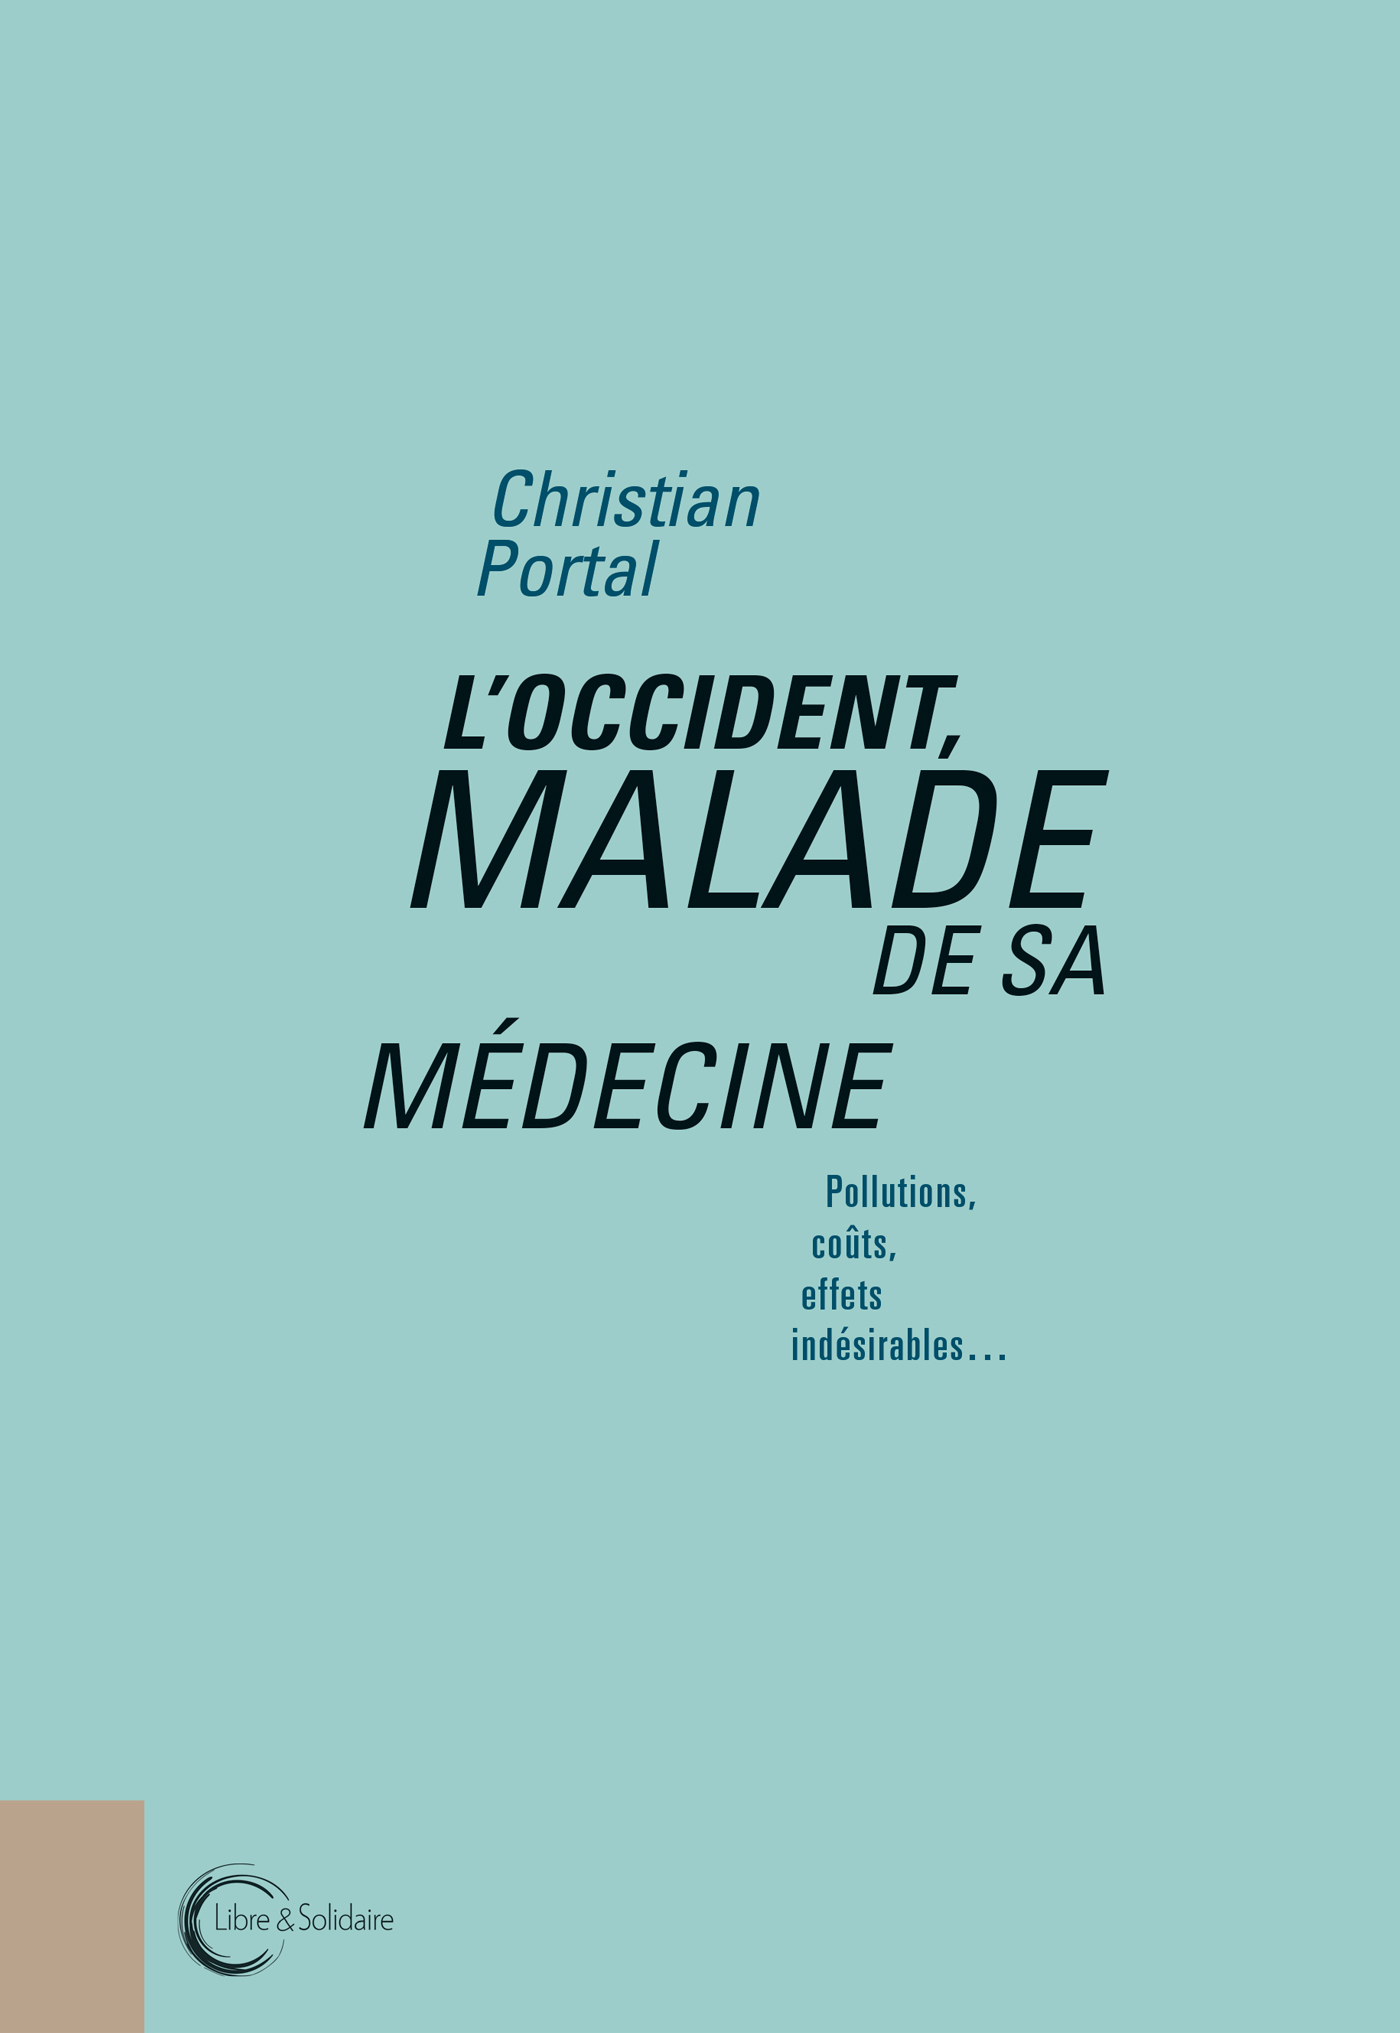 L'OCCIDENT MALADE DE SA MEDECINE - POLLUTION, COUTS, EFFETS INDESIRABLES